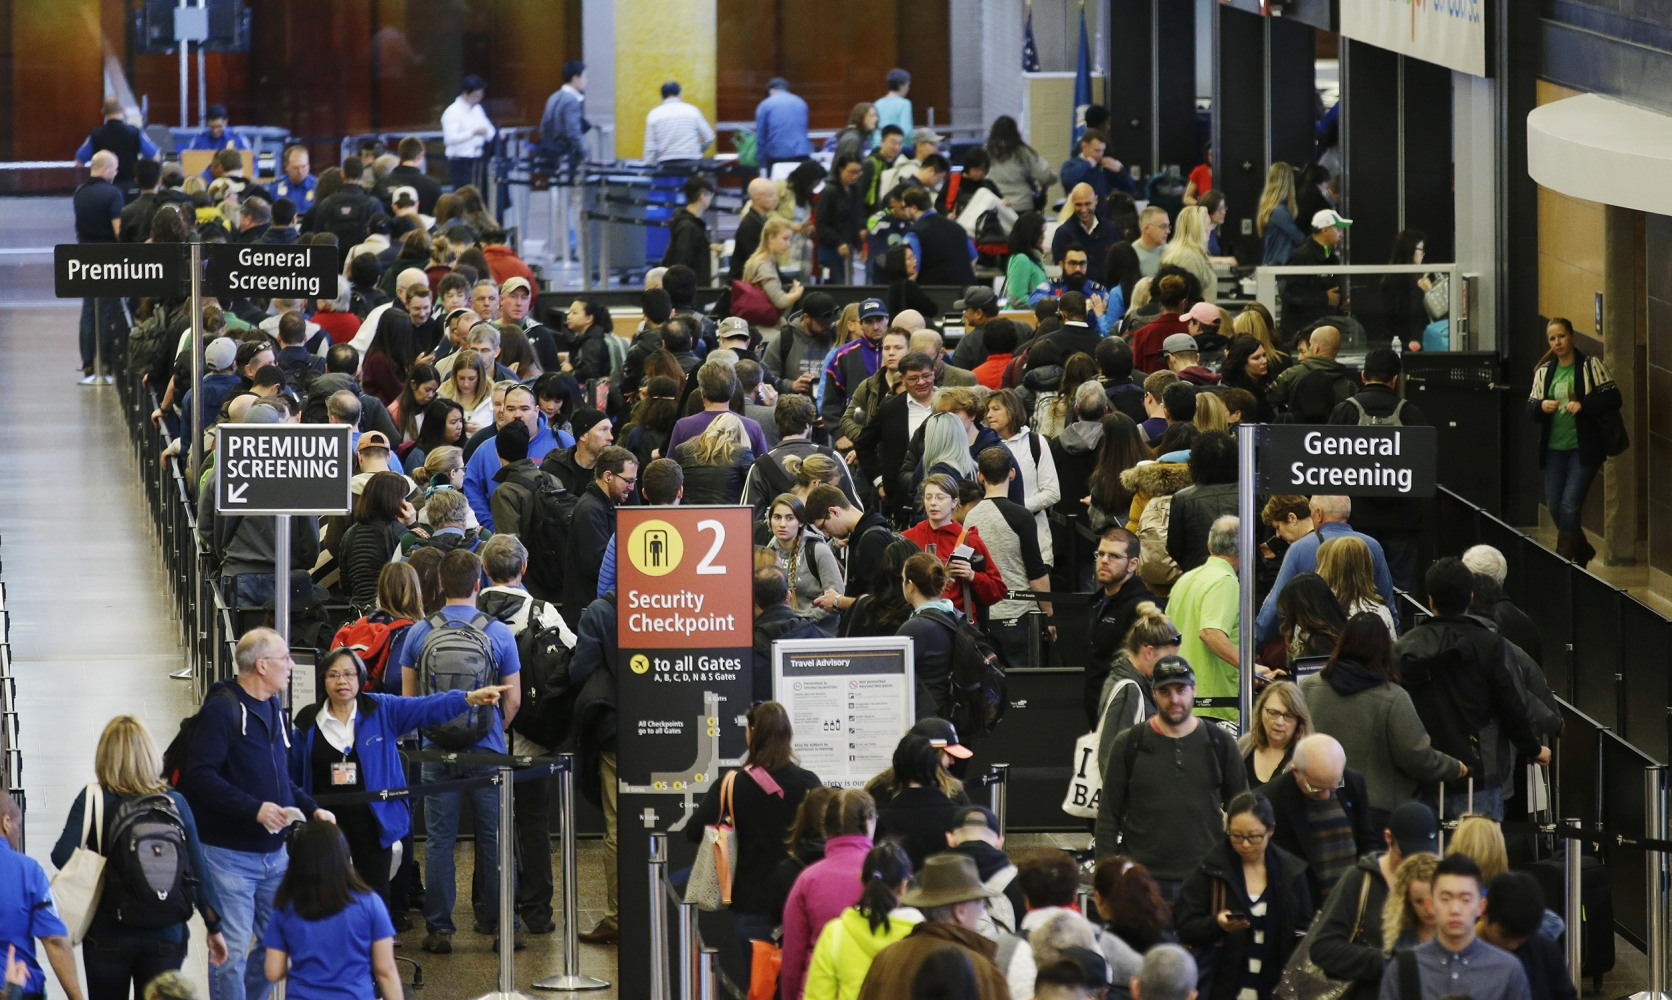 tsa whistleblowers fault lord of the flies culture at agency image travelers wait in line for security screening at seattle tacoma international airport